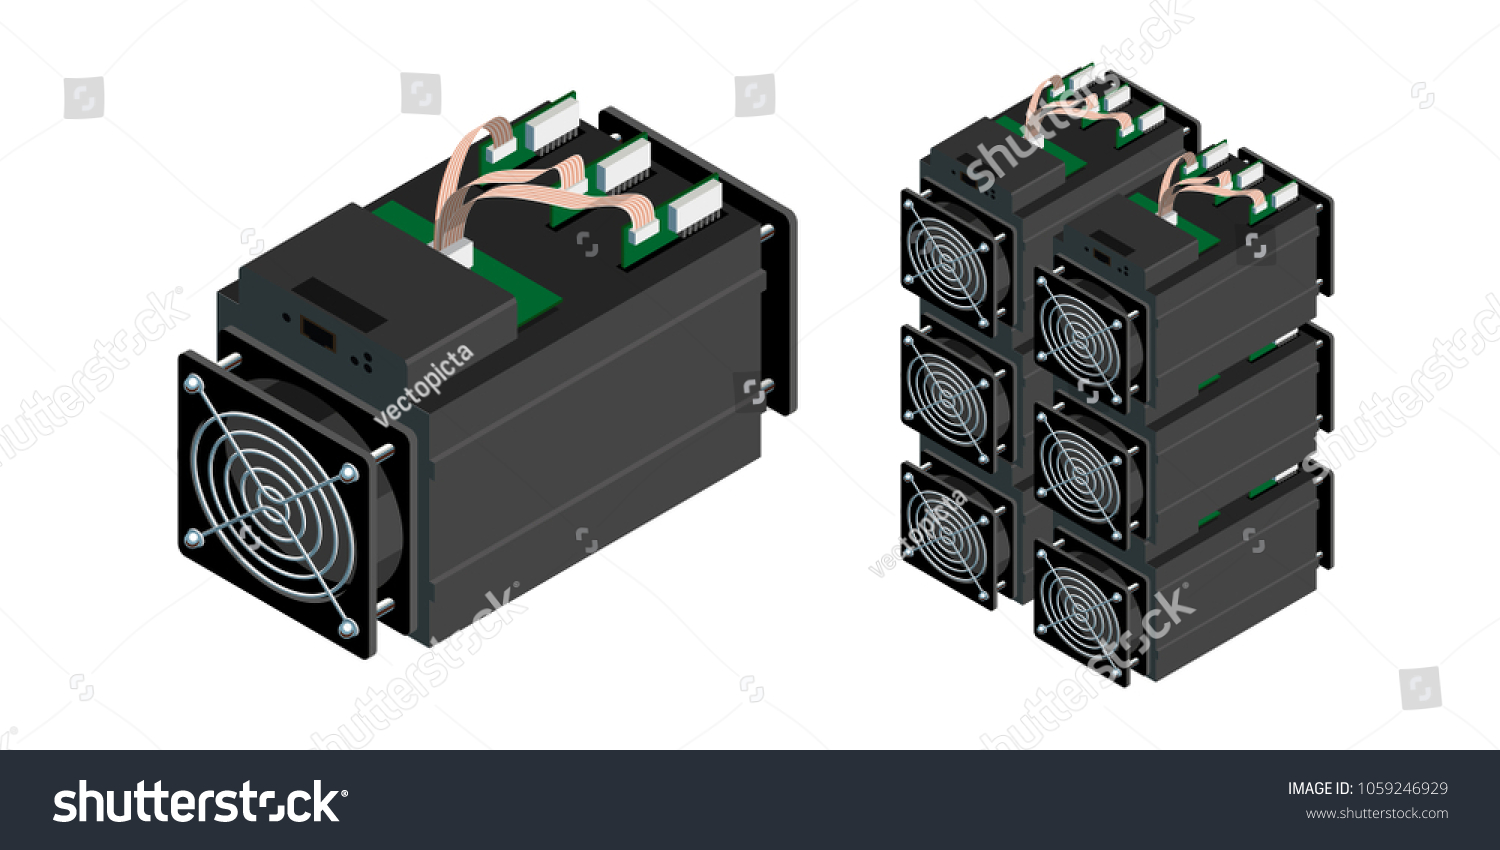 asic cryptocurrency mining